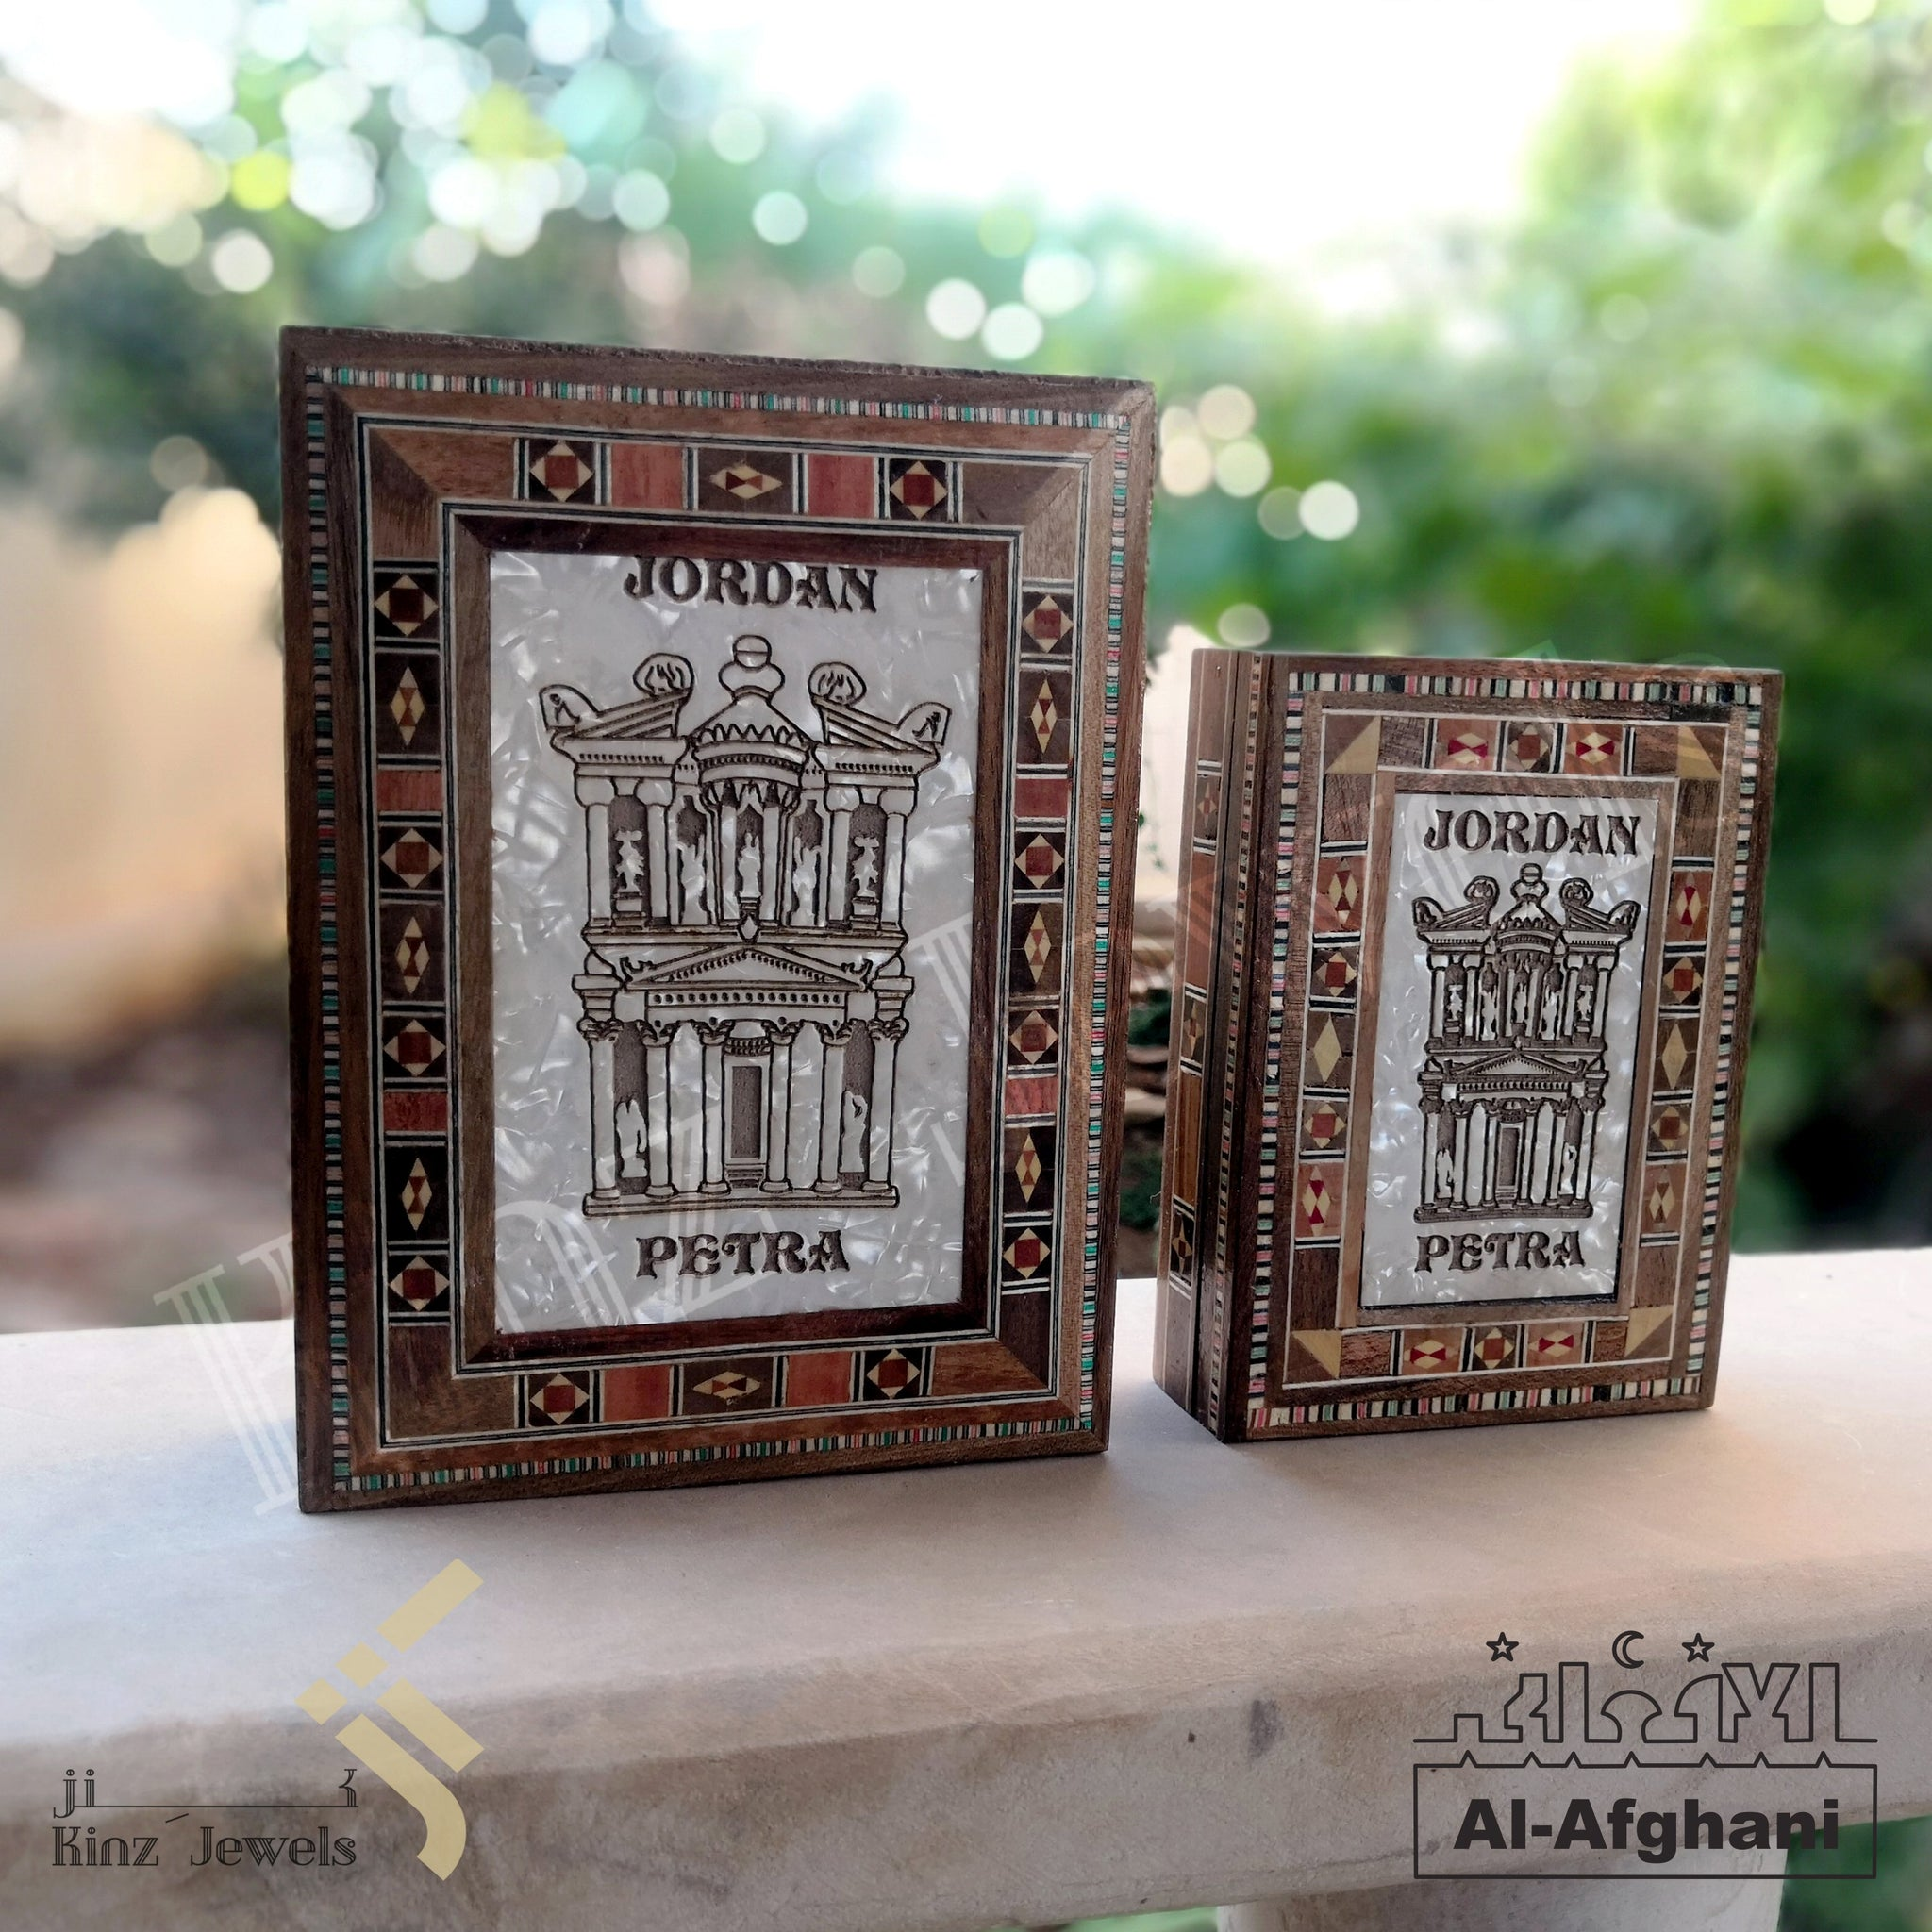 kinzjewels - Afghani - Handcrafted Wooden Arabian Mosaics with Mother Of Pearl Petra Box